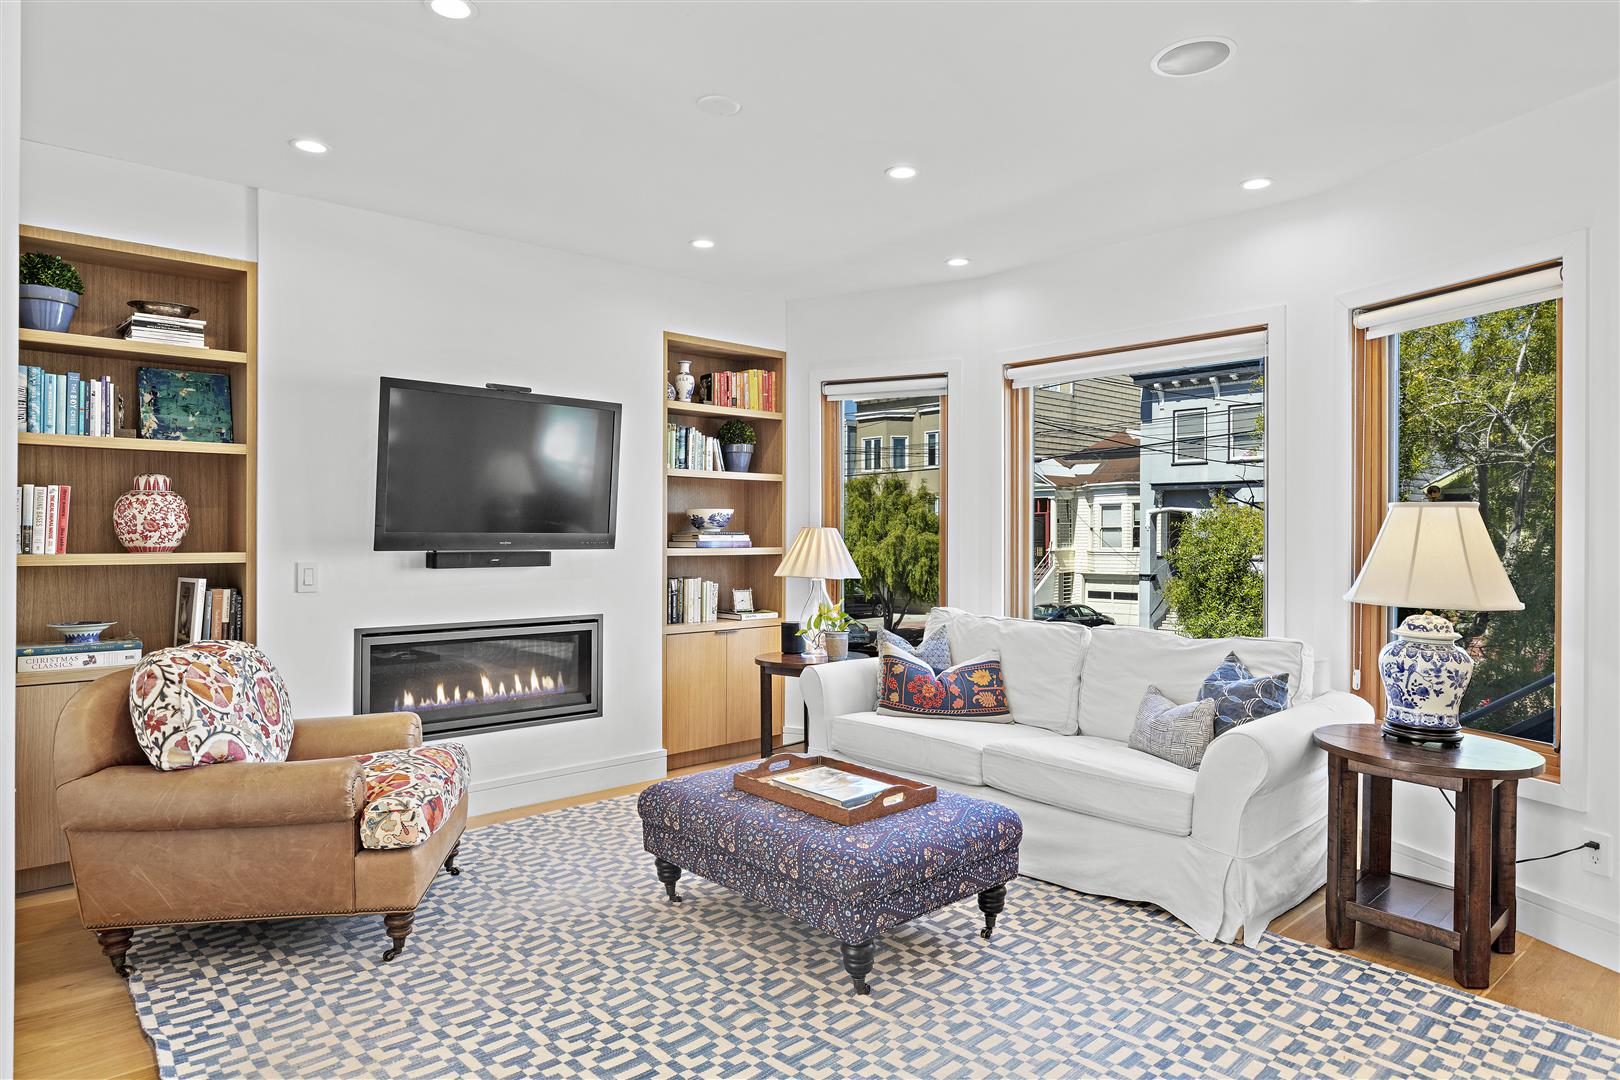 8-MLS-375-30th-Ave-San-Francisco15.jpg #9